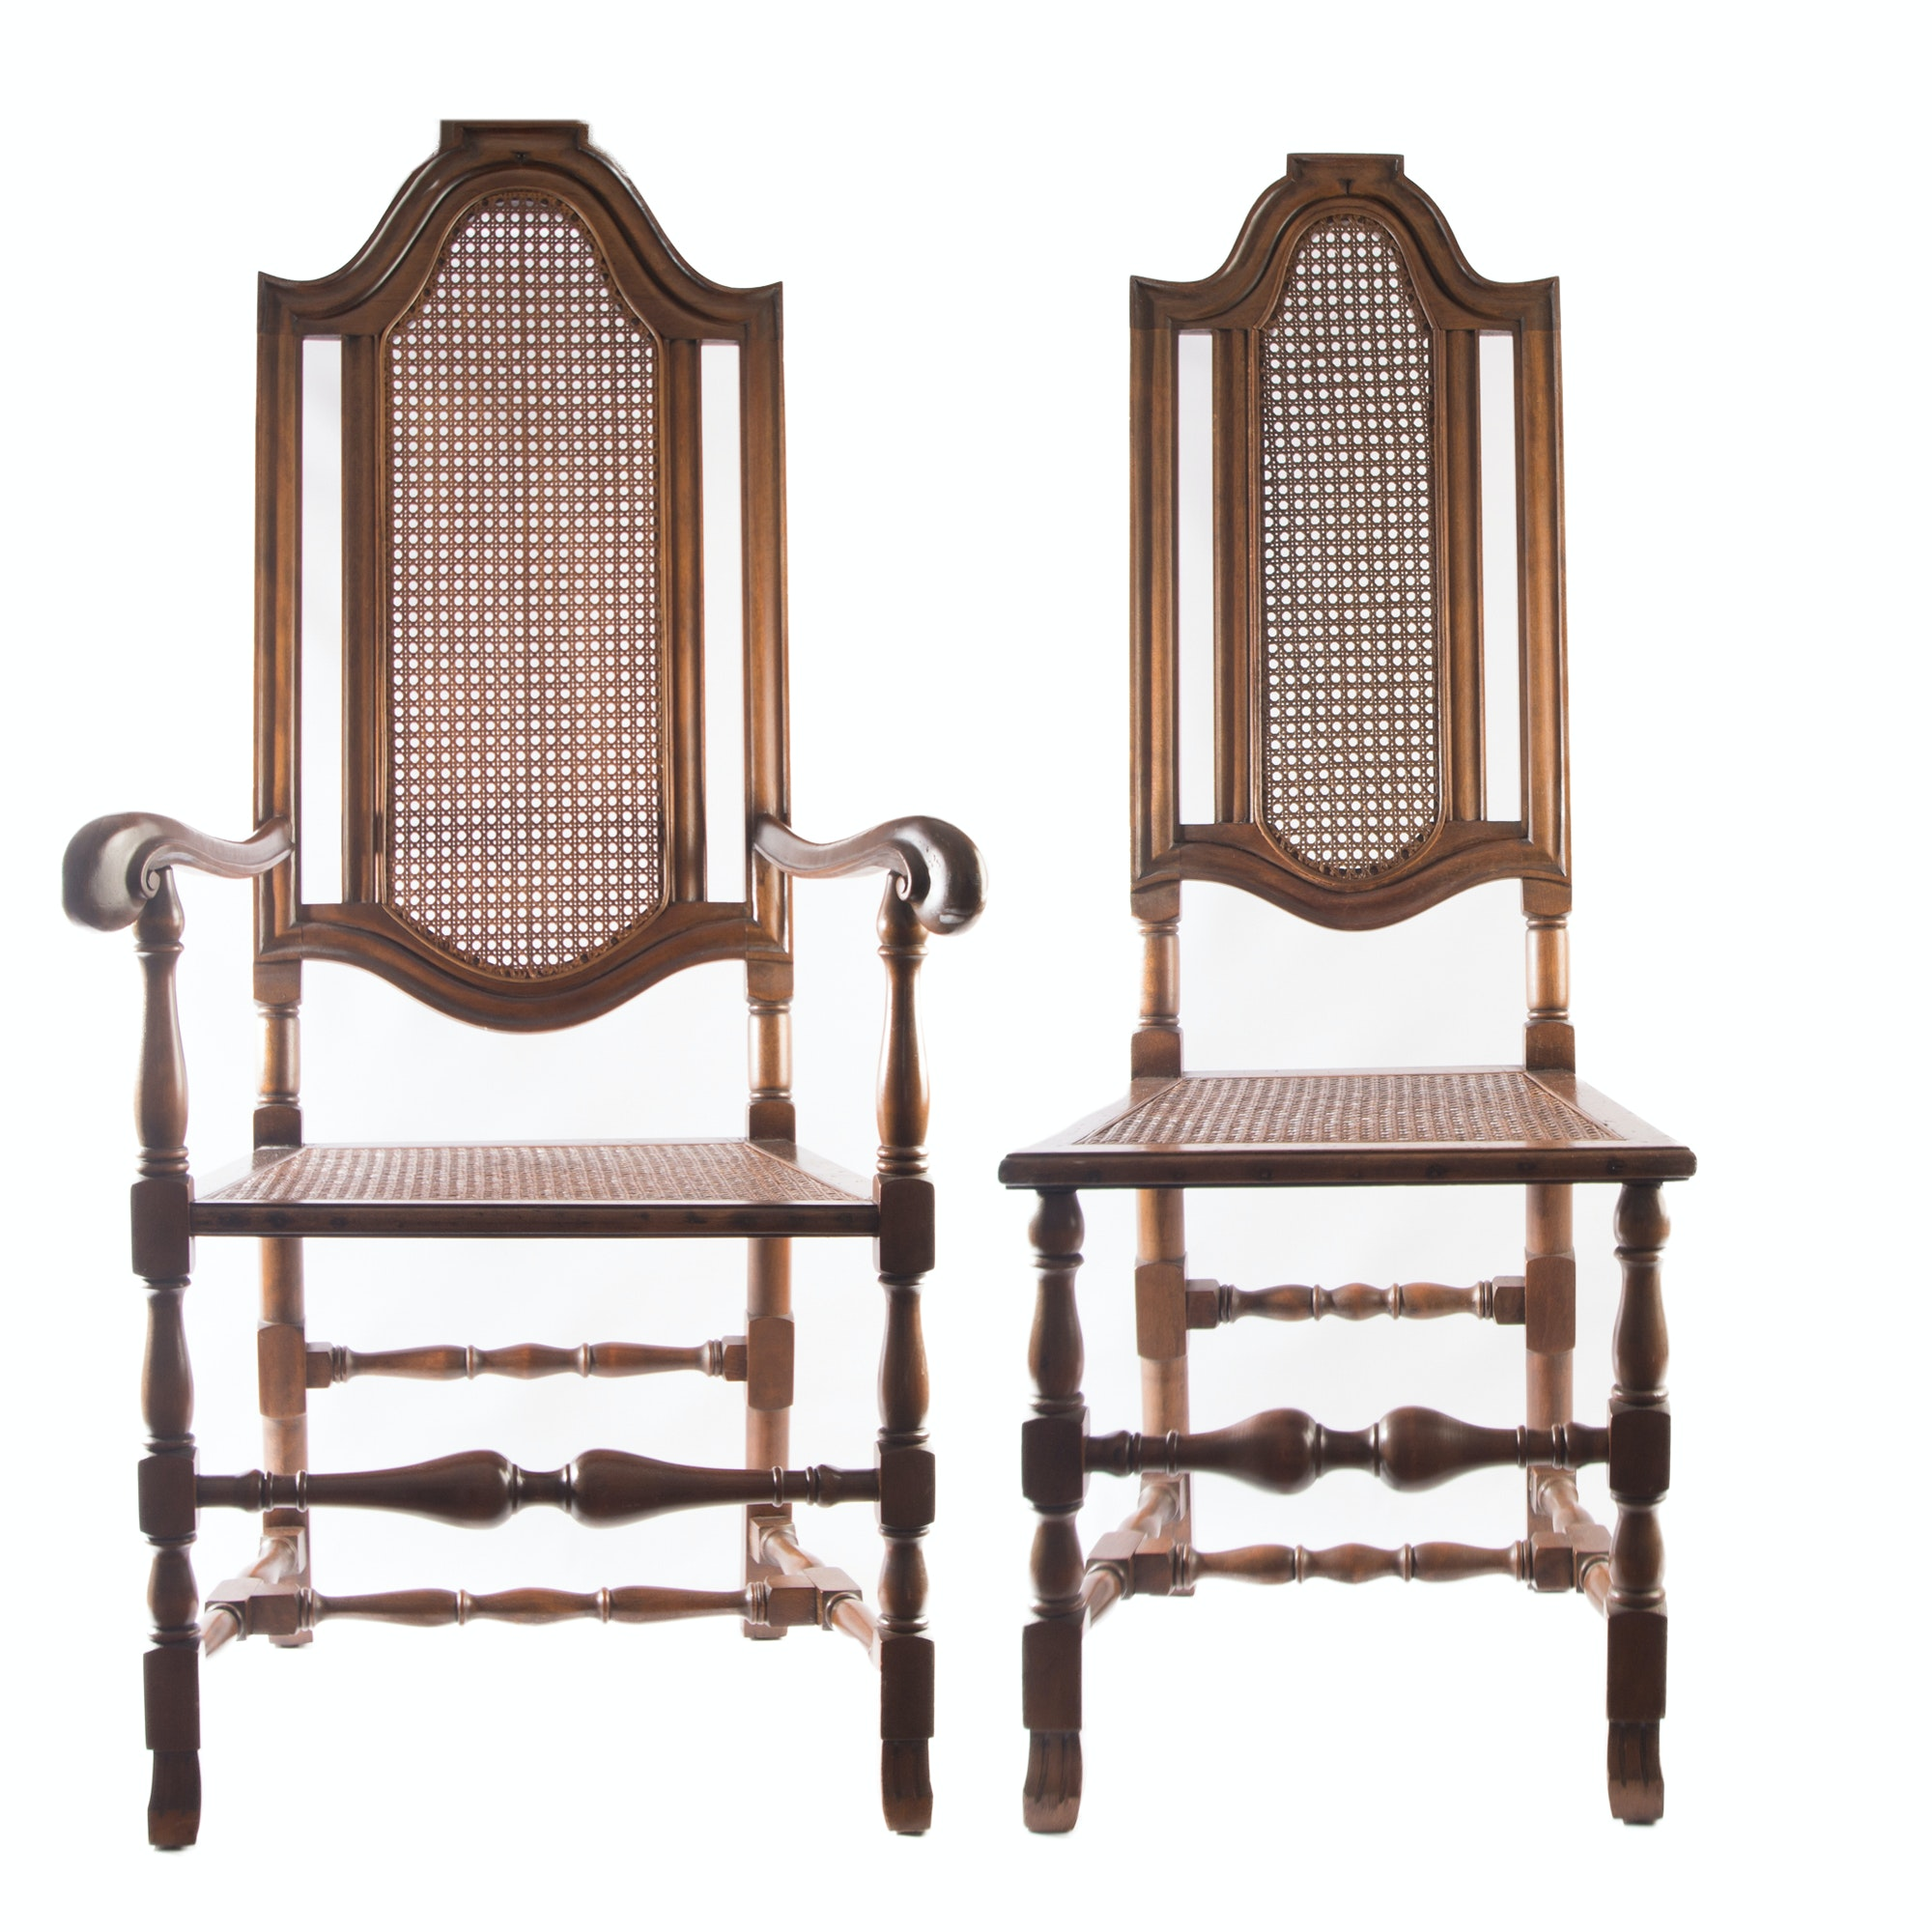 Vintage William & Mary Style Chairs